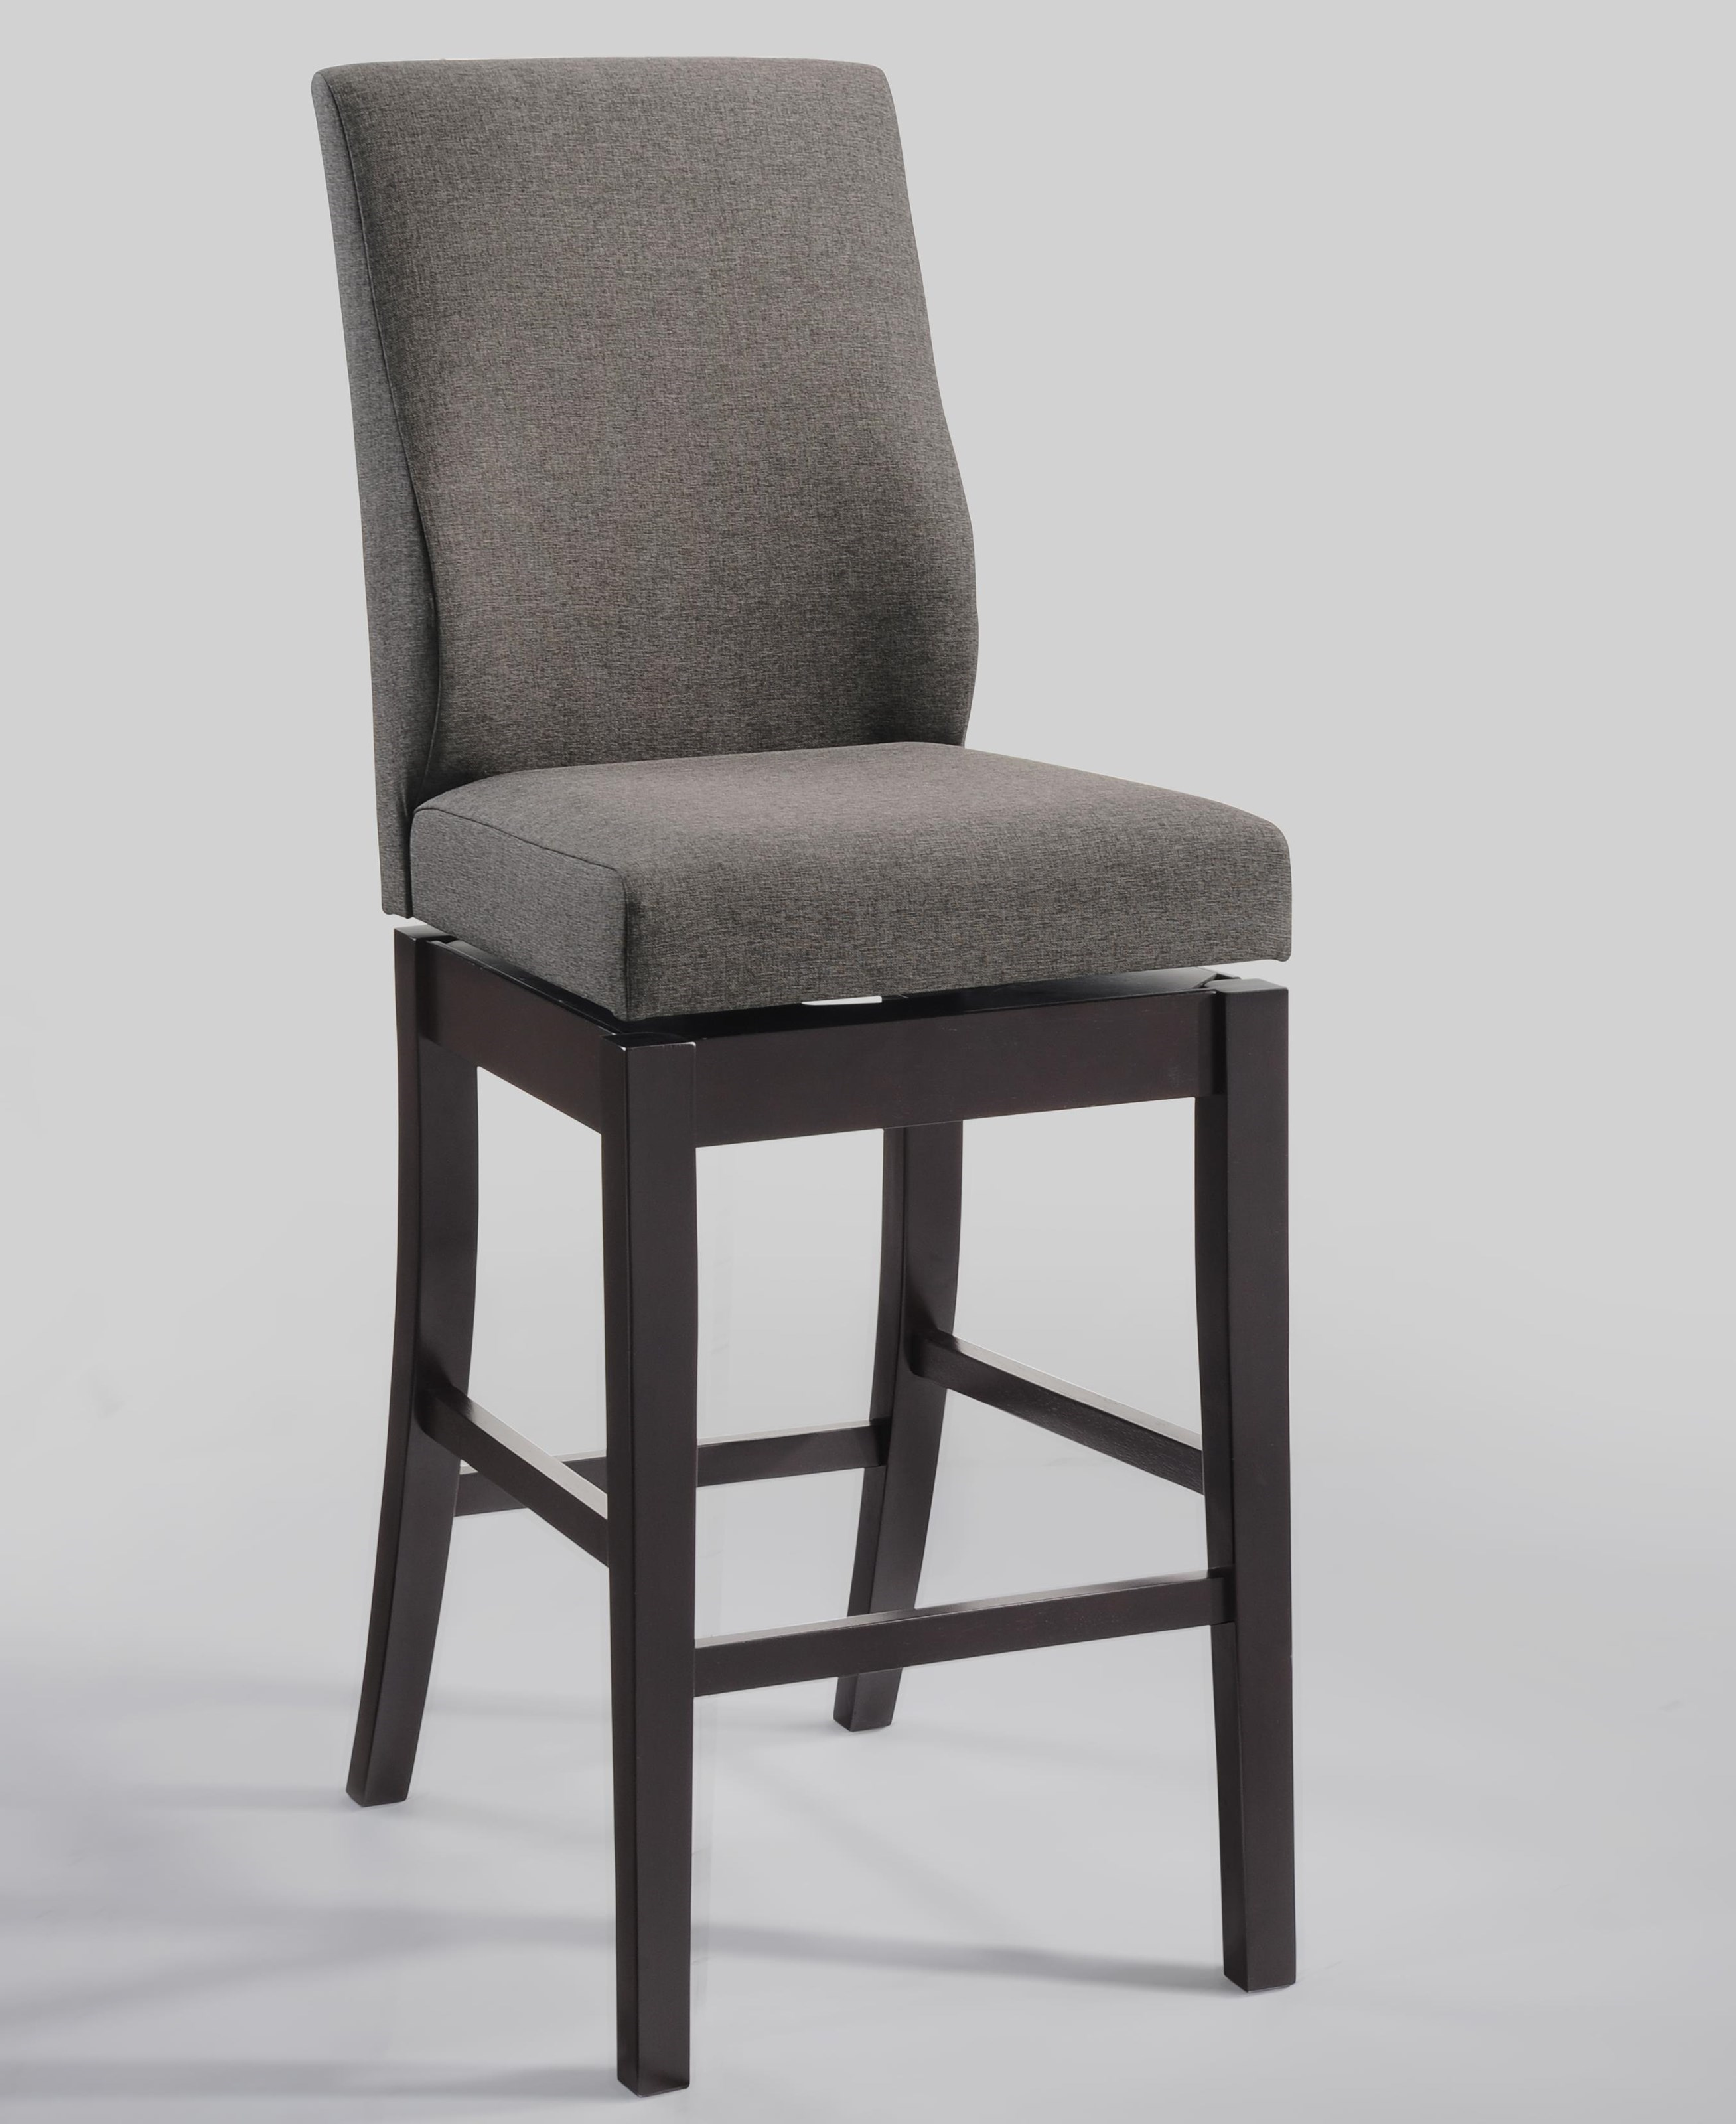 29 Swivel Bar Stool Backless 29 Inch Wood Bar Stool With